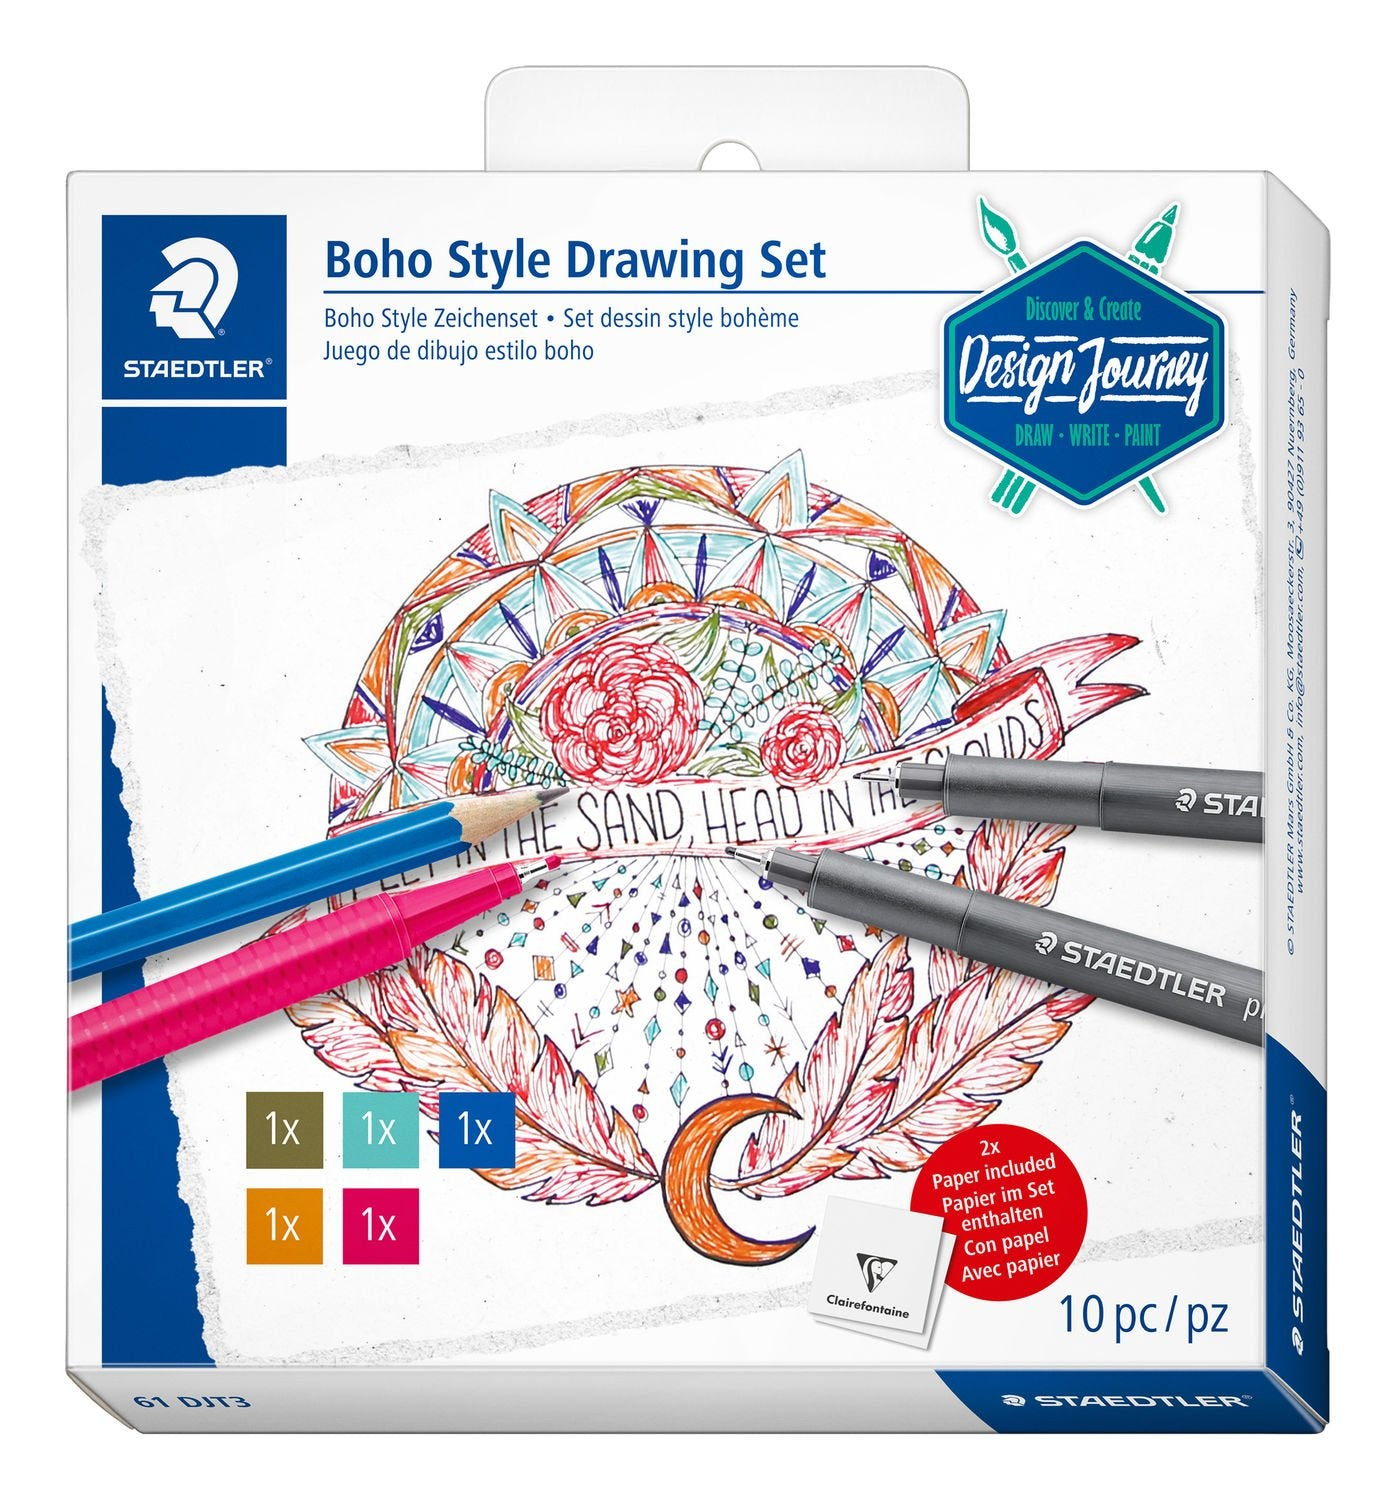 Staedtler Boho Style Drawing Set 61 DJT3